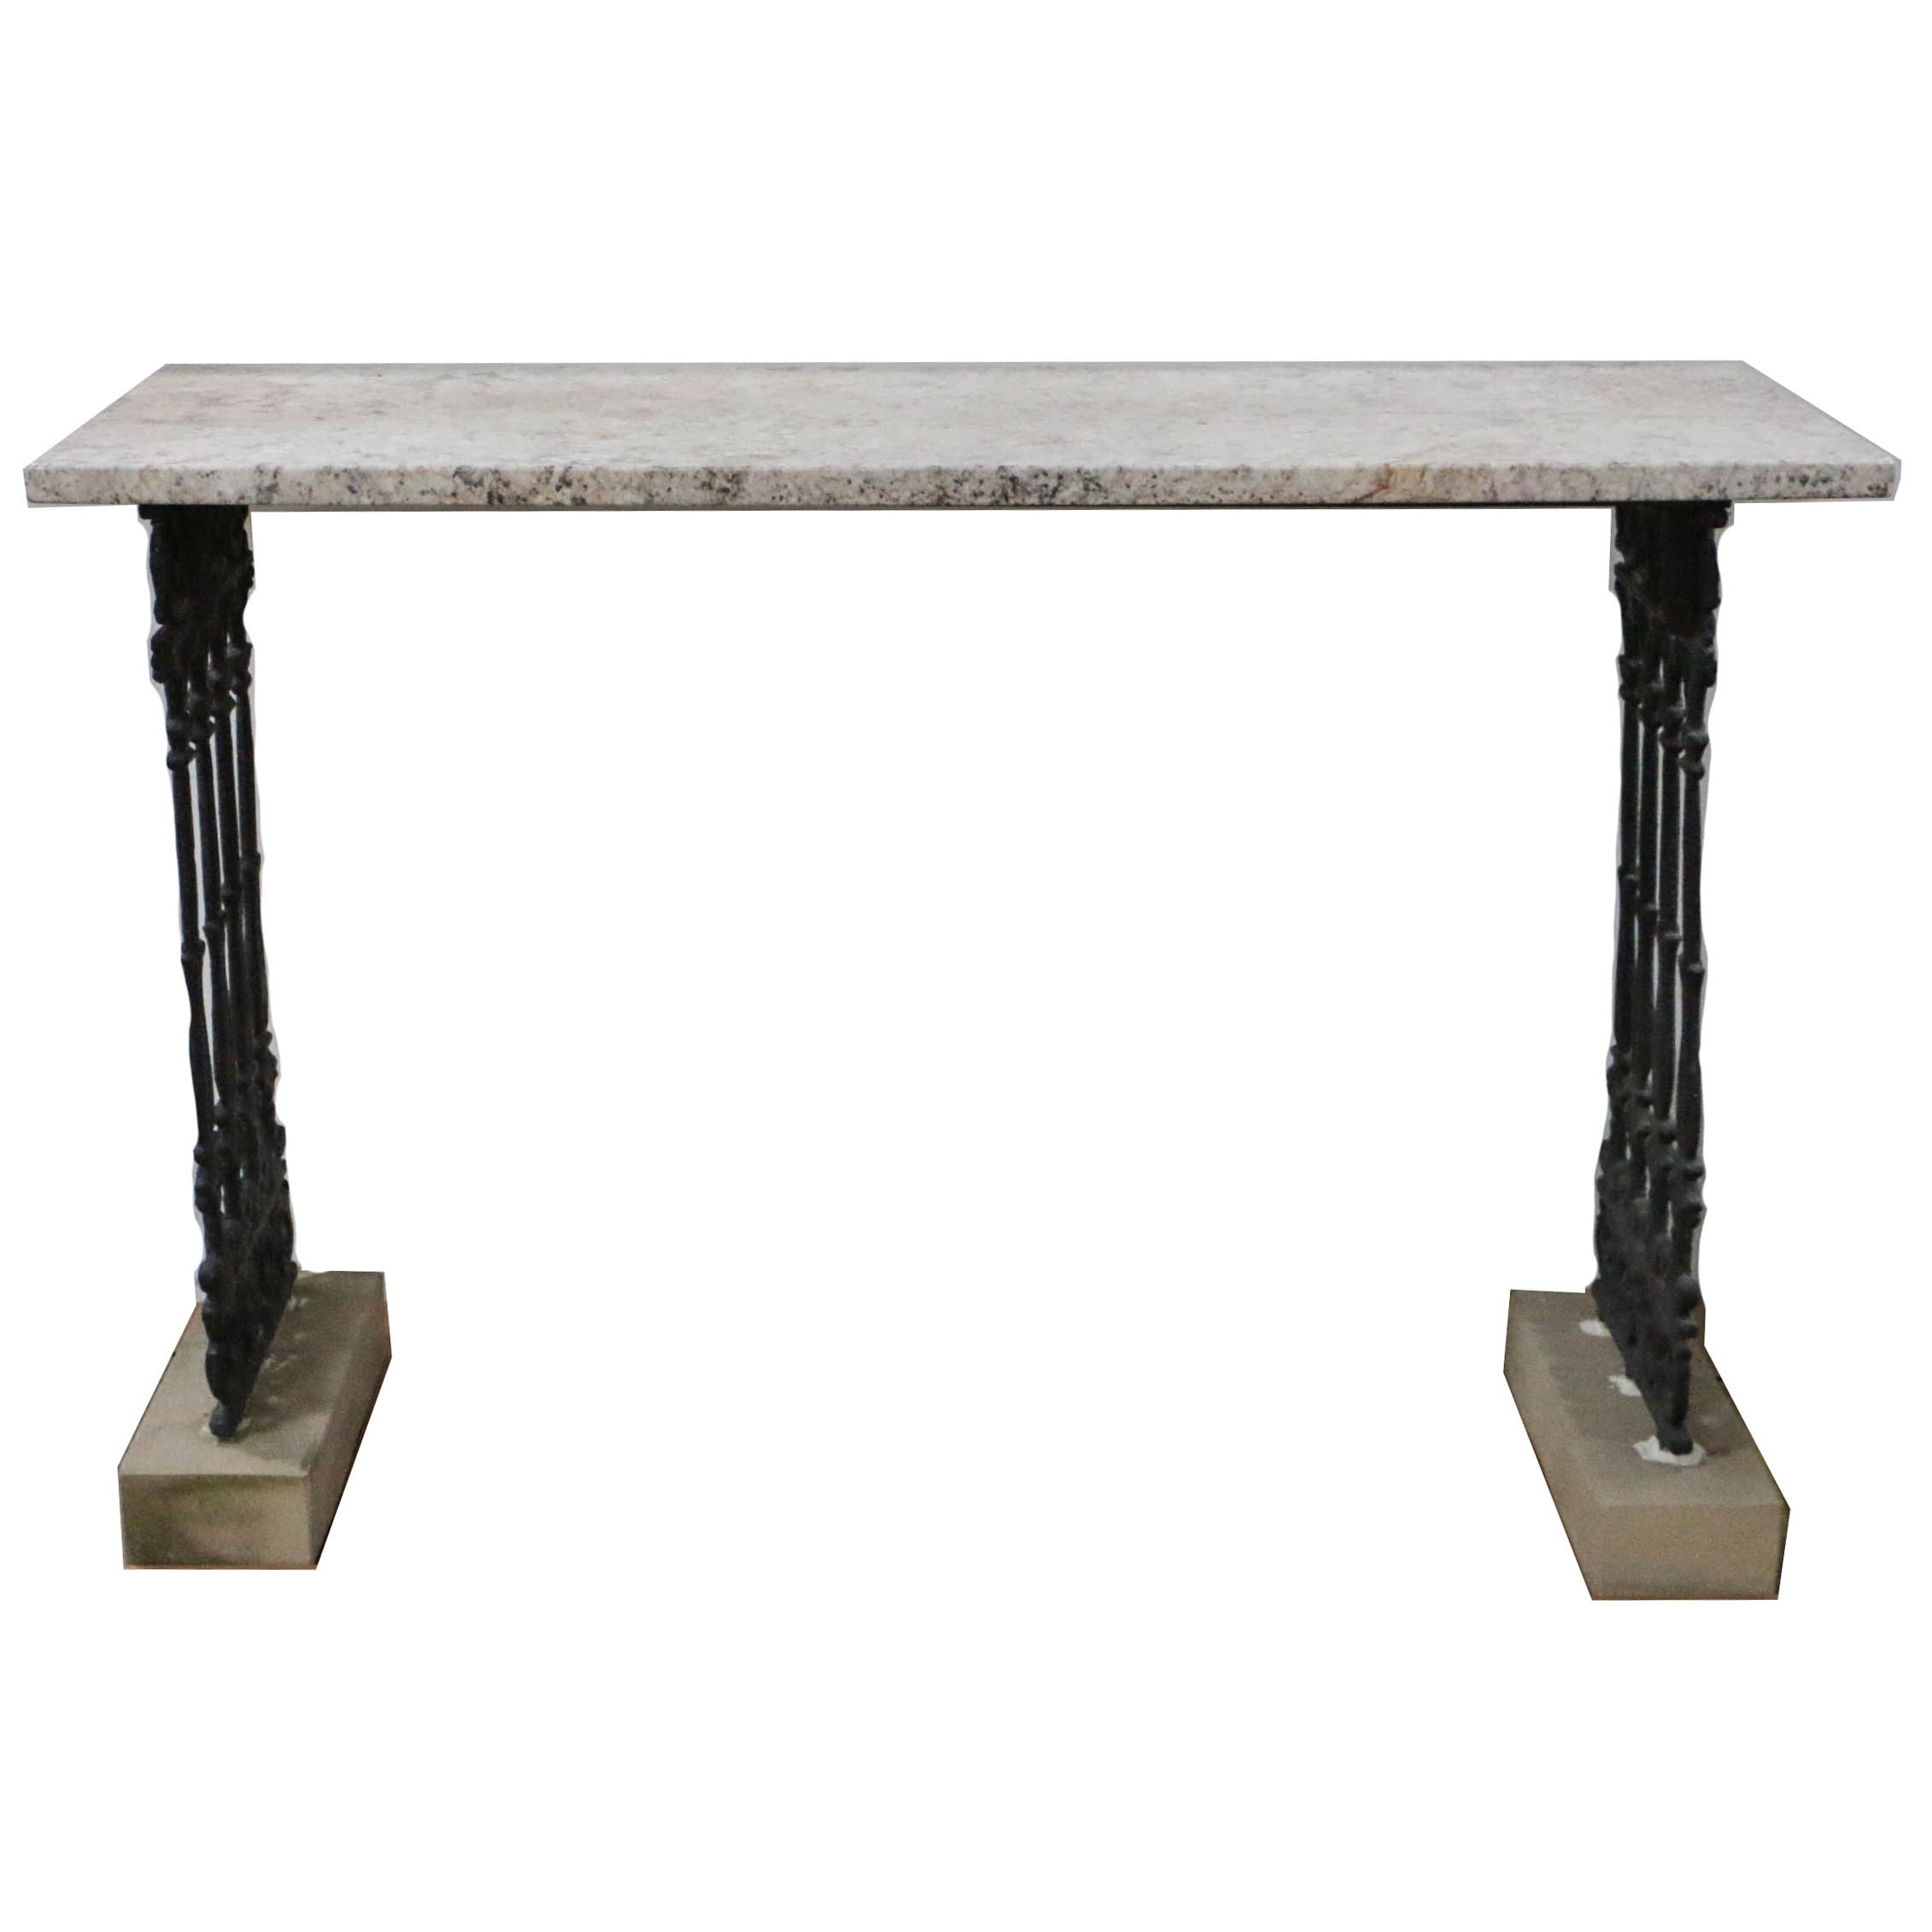 Custom-Made Console Table with Granite Top and Antique Cast Iron Fence Panels